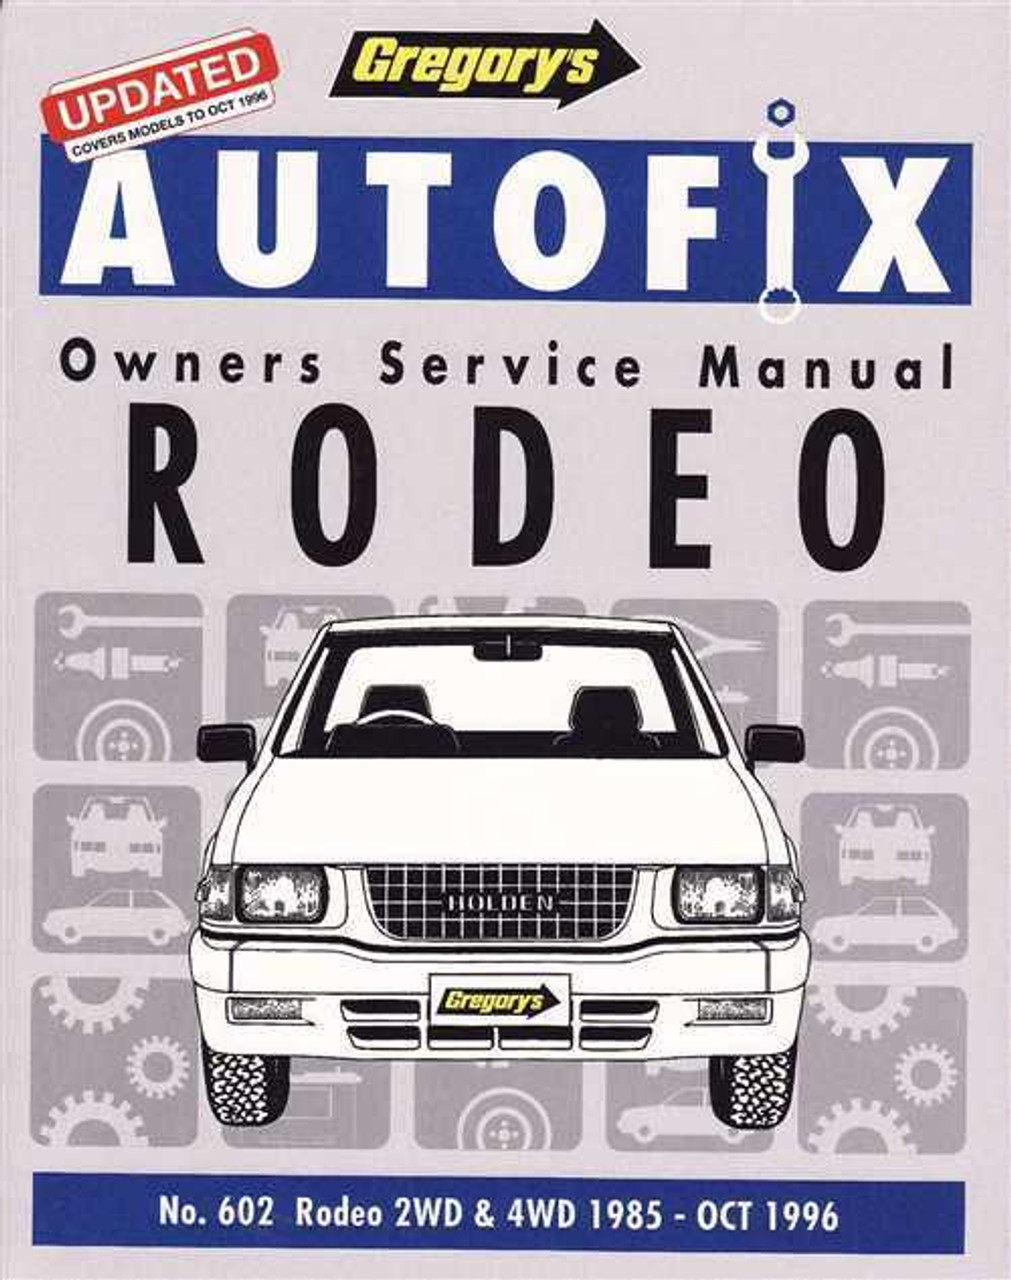 holden rodeo 2wd 4wd petrol 1985 1996 workshop manual rh automotobookshop com au ra rodeo workshop manual free holden rodeo workshop manual pdf